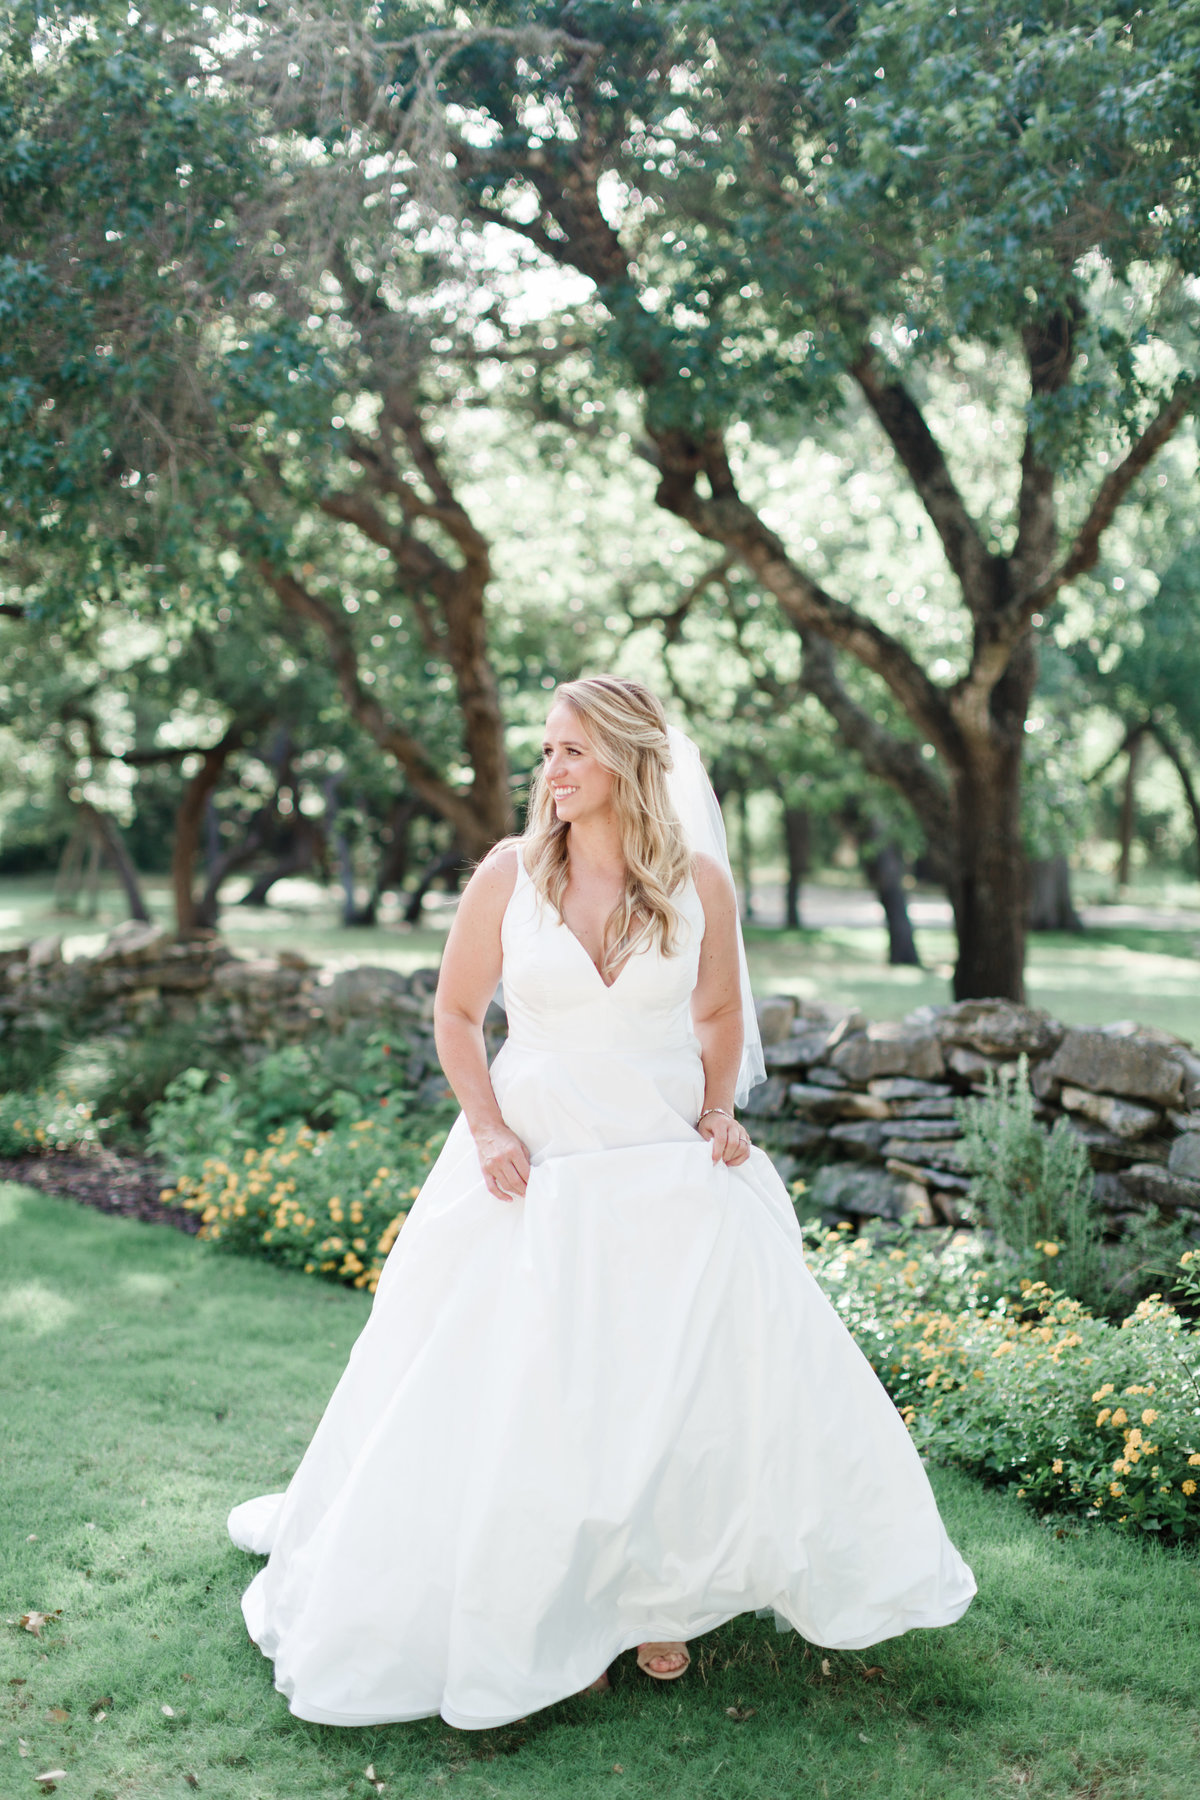 Bridal Portraits - Summer Ragsdale -14